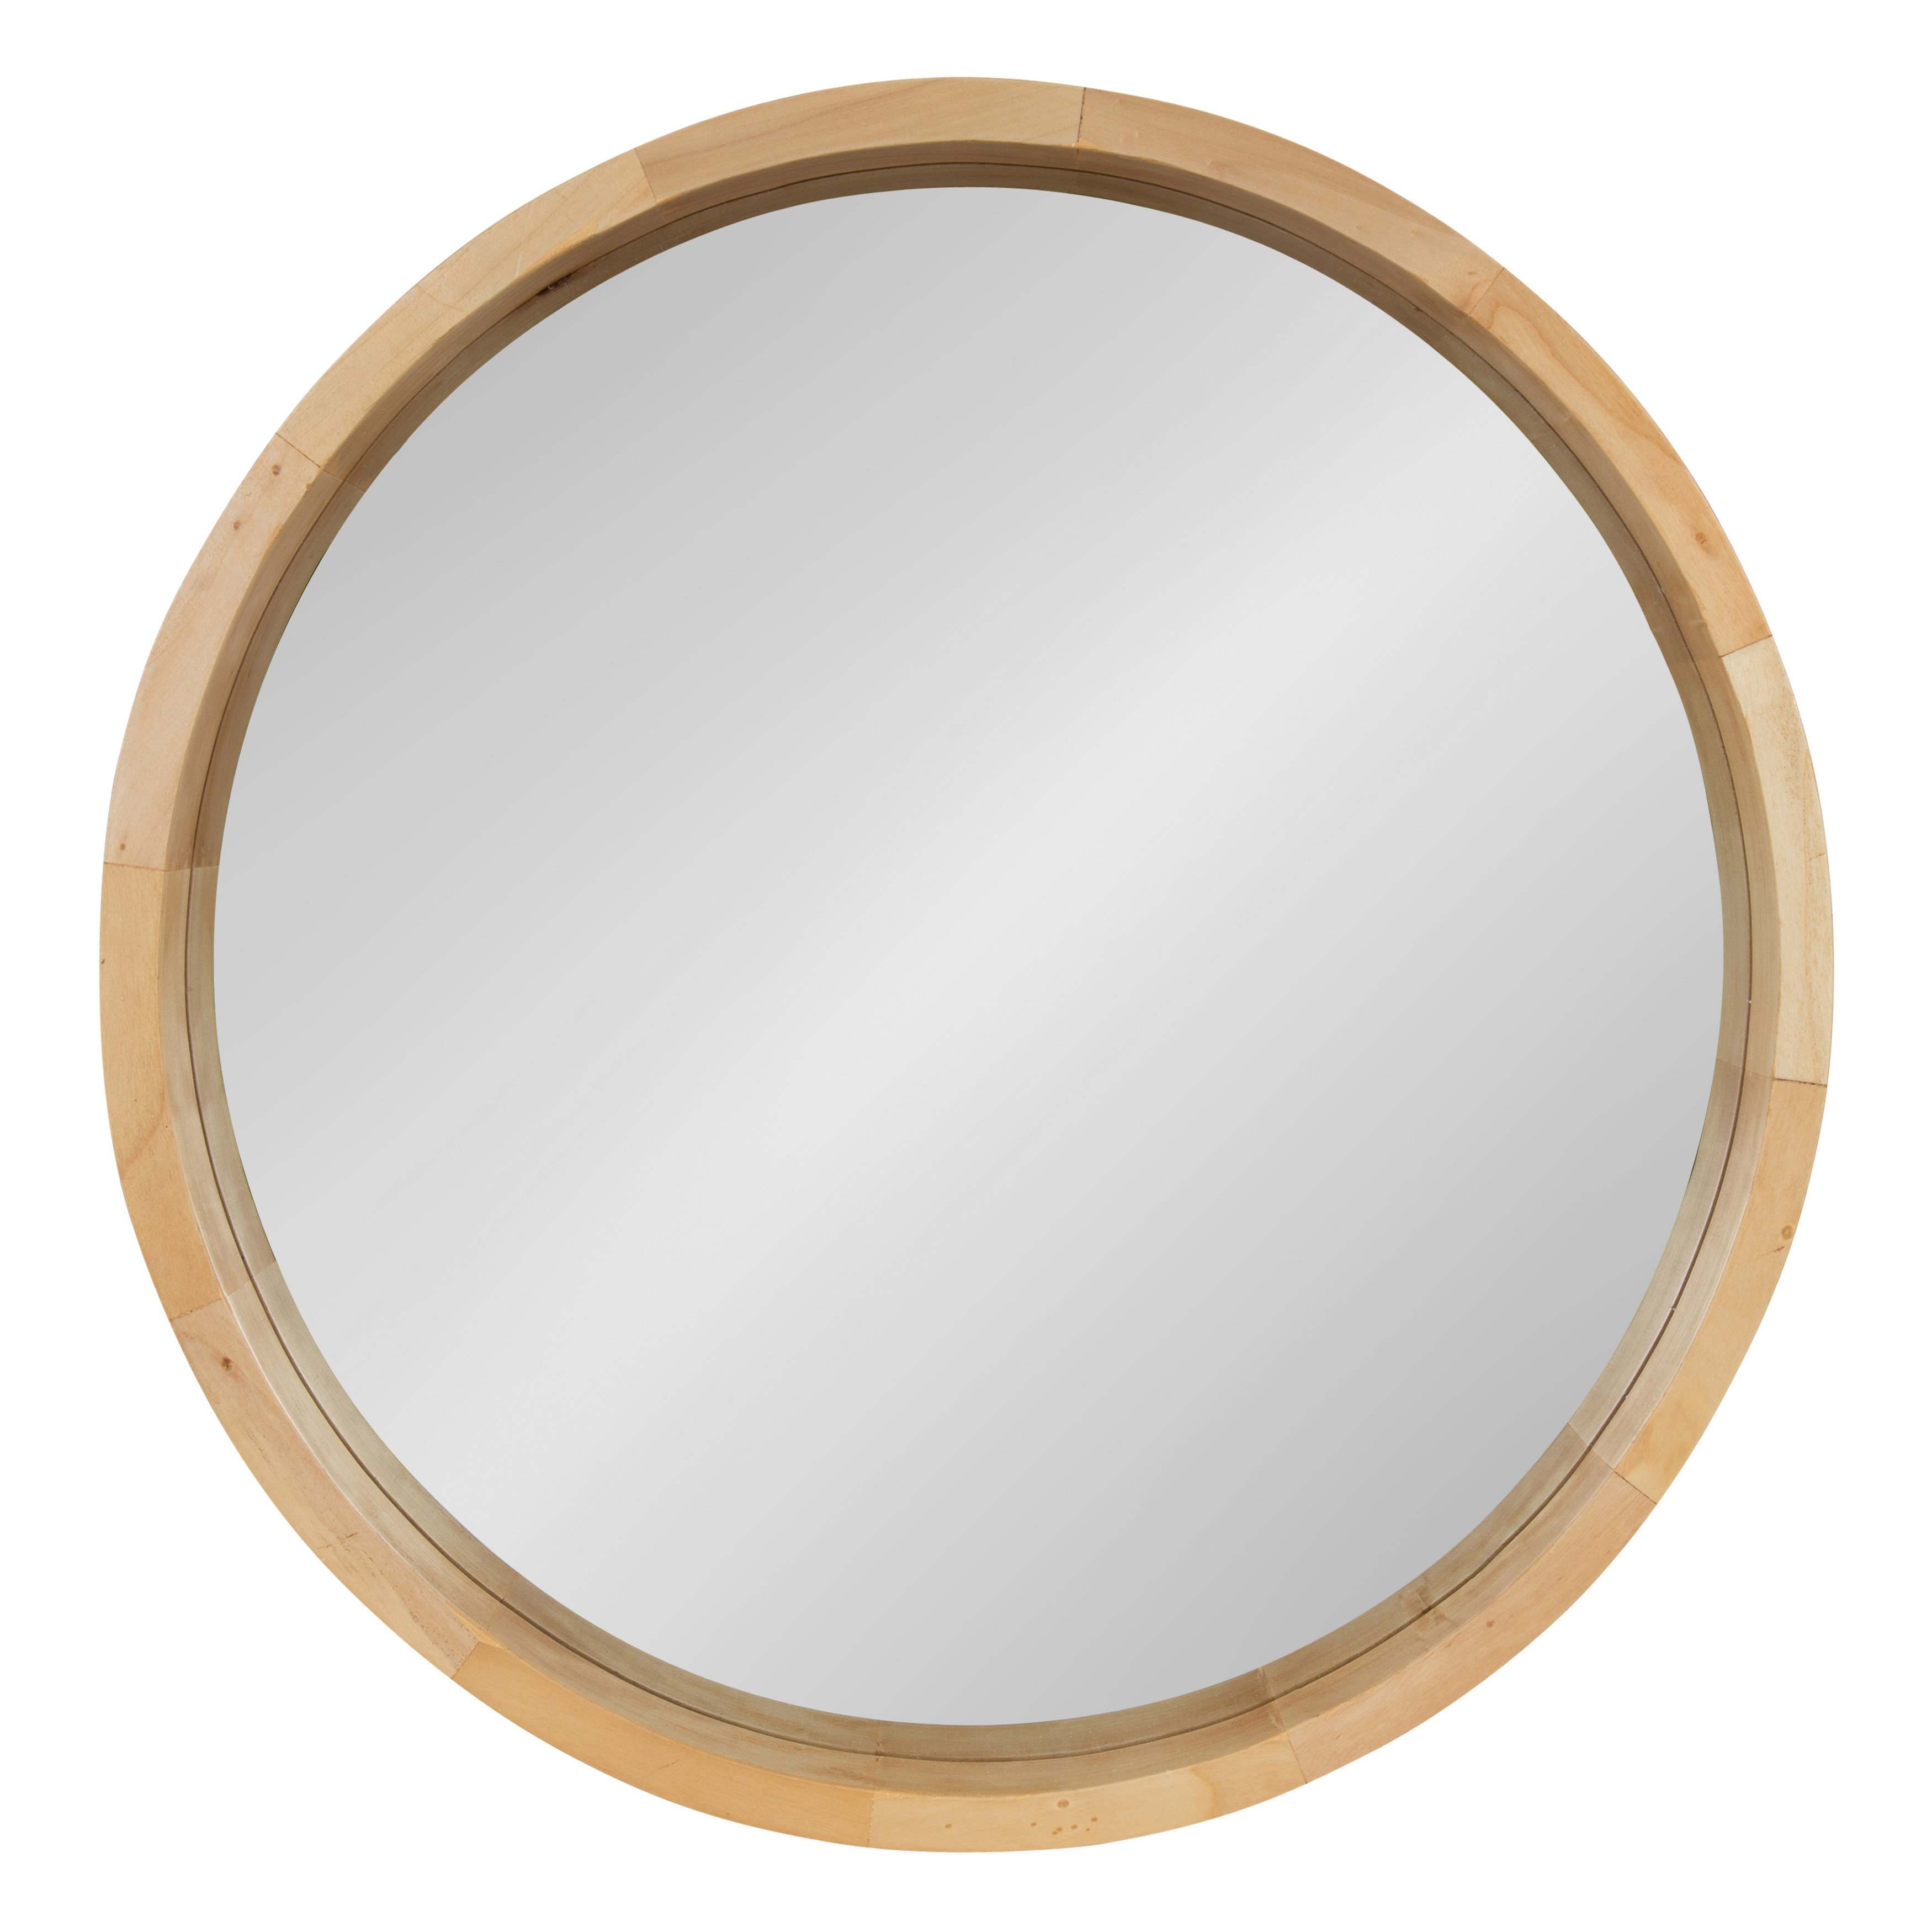 Accent Round Mirrors You'll Love In 2019 | Wayfair Regarding Matthias Round Accent Mirrors (Image 1 of 20)